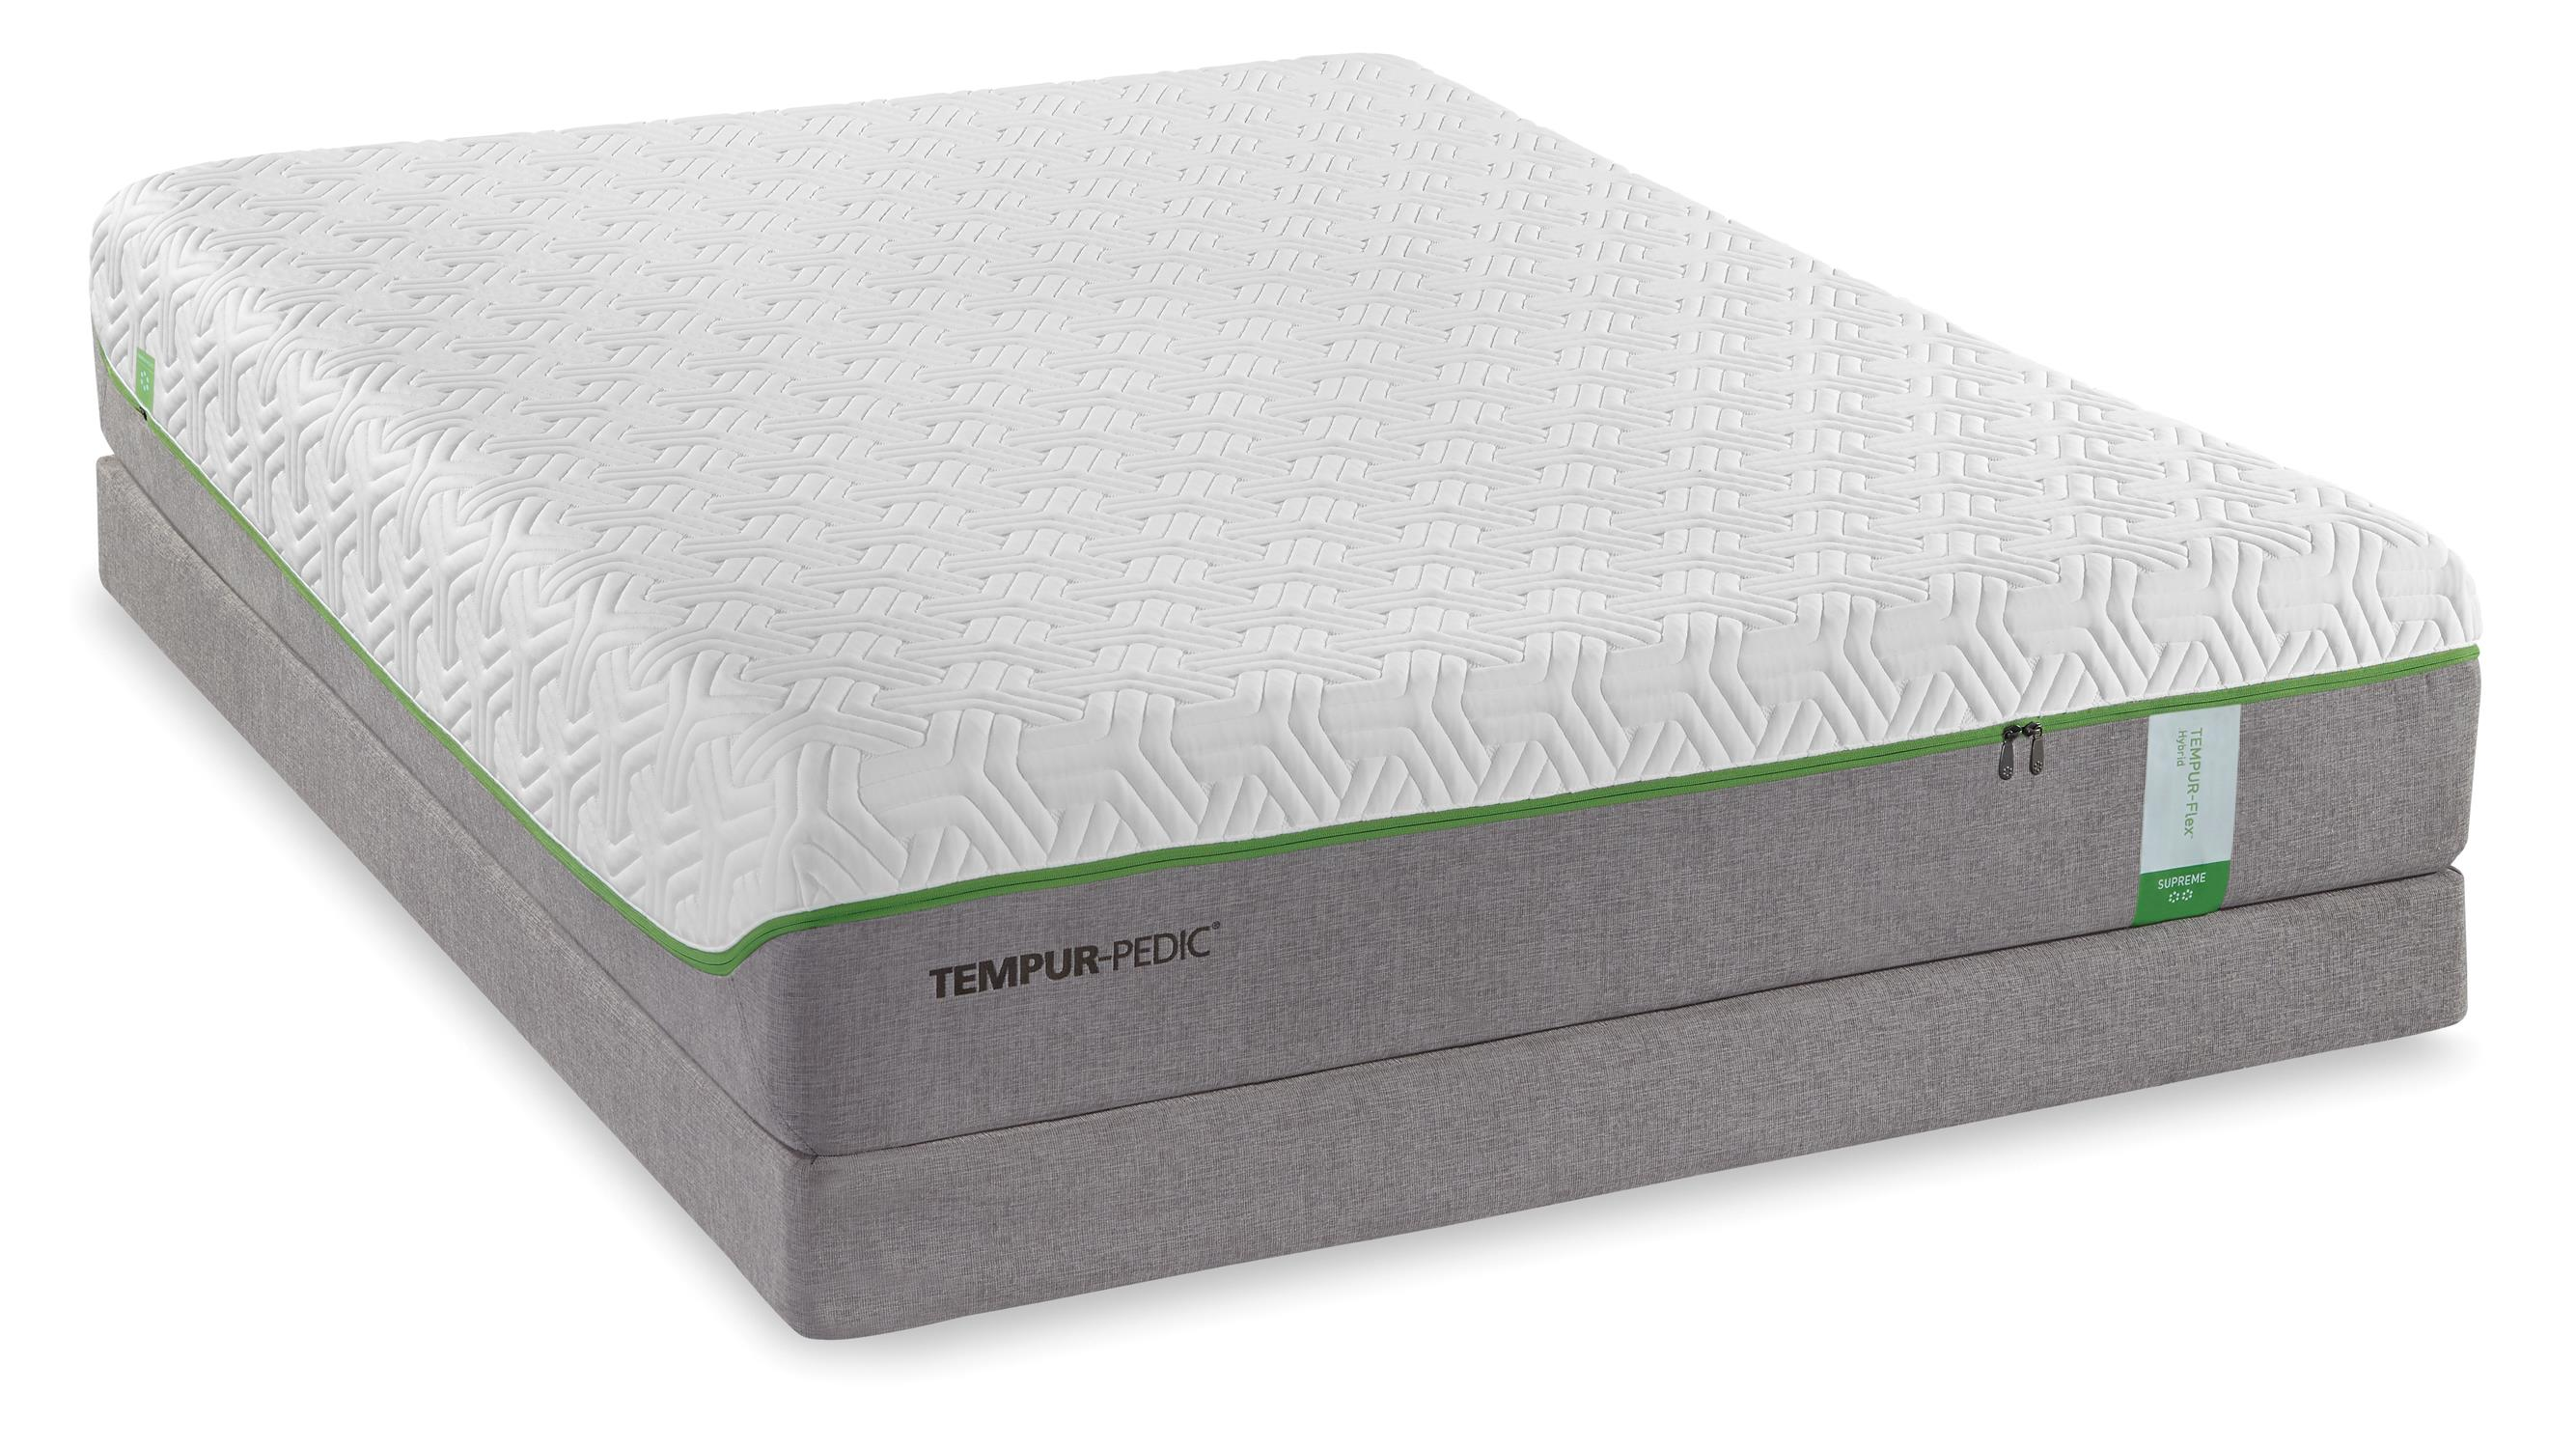 Tempur-Pedic® TEMPUR-Flex Supreme King Medium Plush Mattress Set - Item Number: 10116170+2x21510120